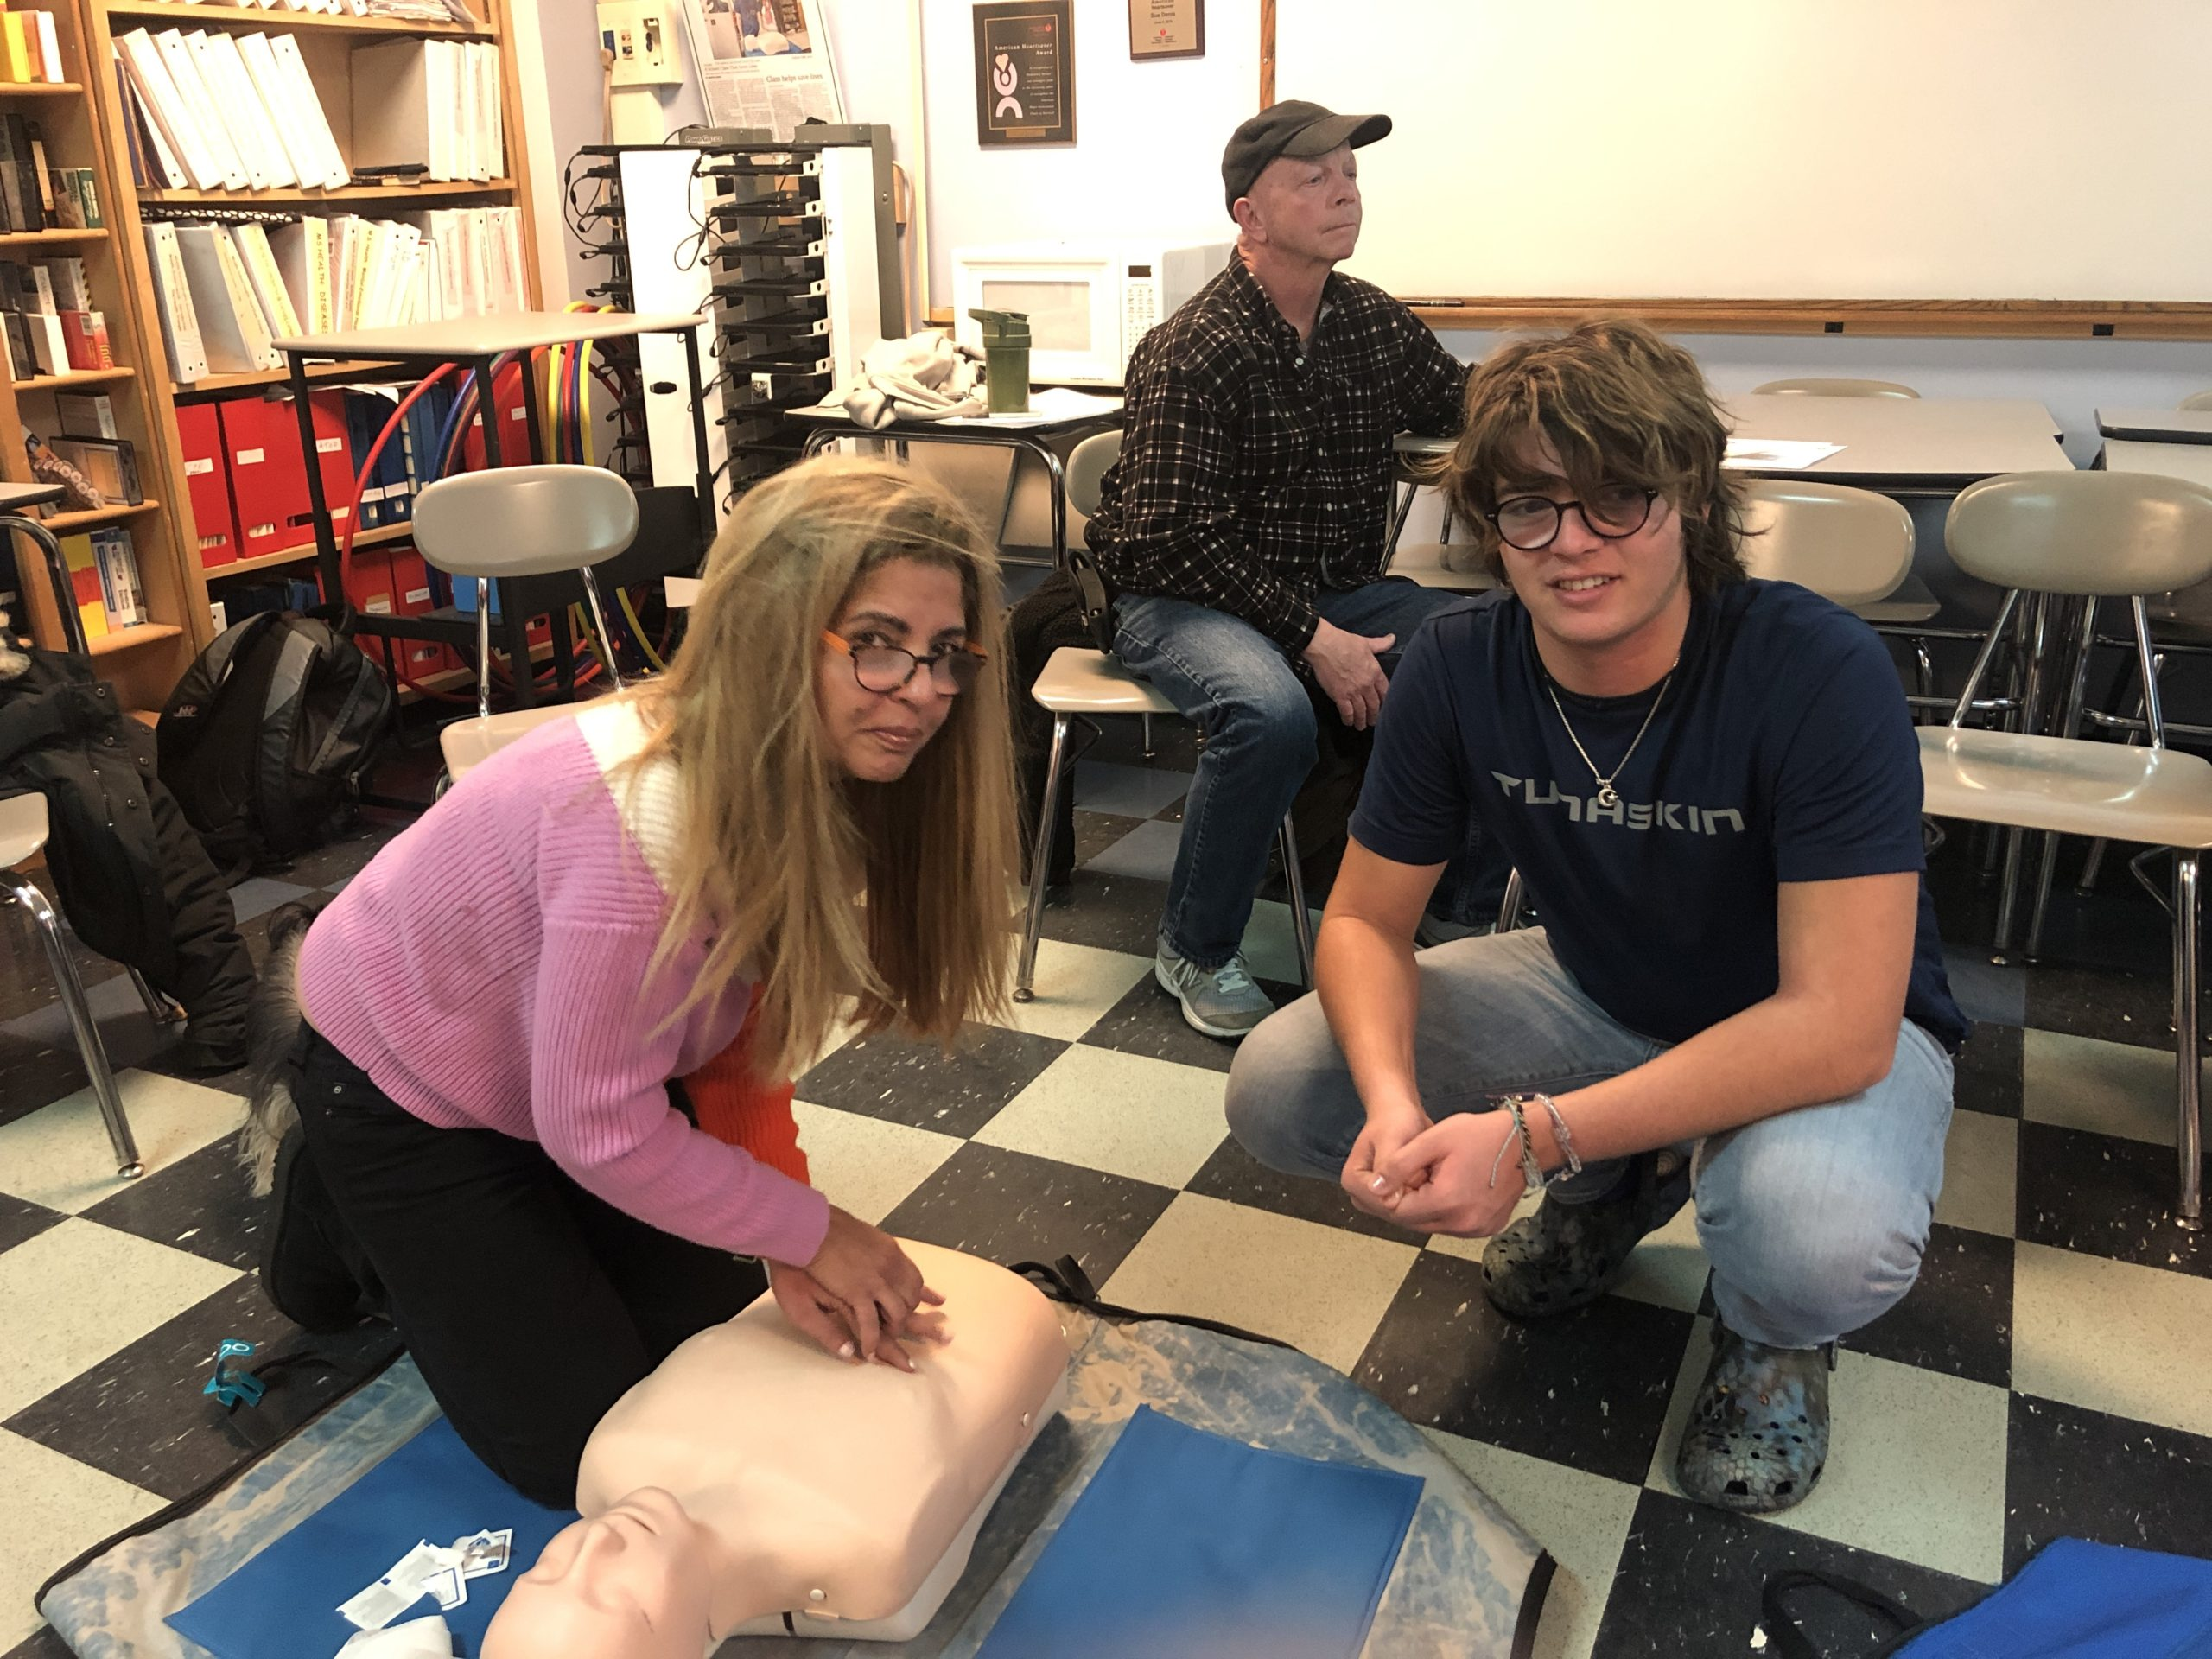 Pierson Middle School seventh-graders recently learned CPR and life-saving skills in gym class, as part of their participation in American Heart Month.